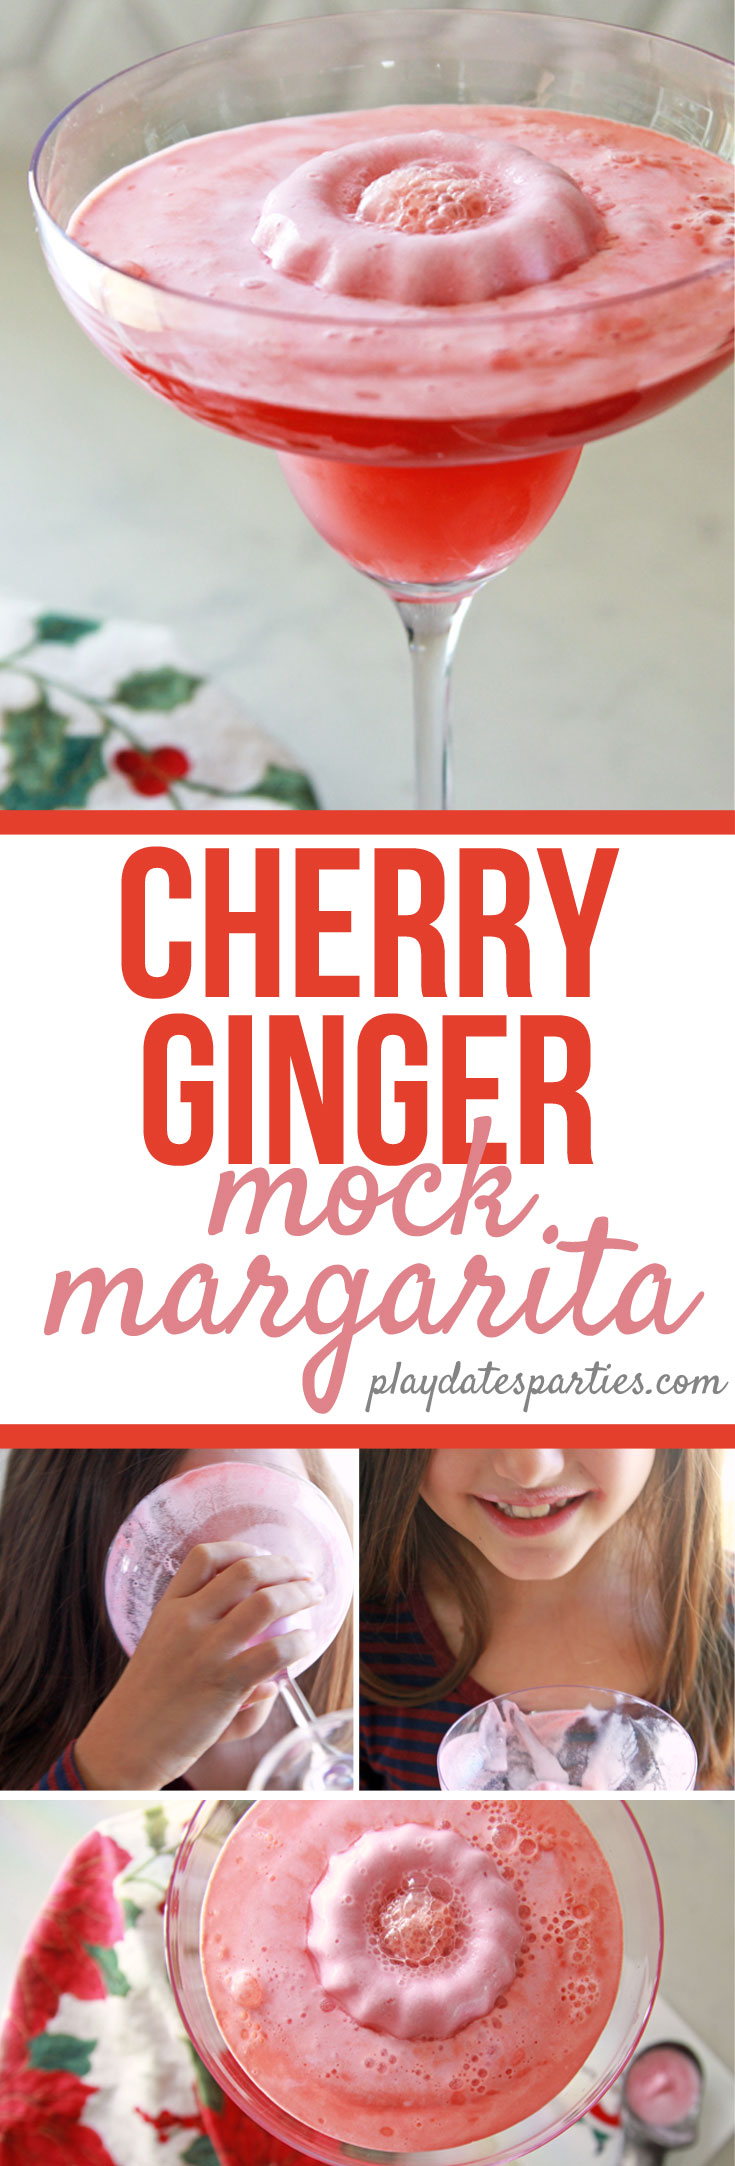 Want a fun and unique holiday dessert recipe for your kids this Christmas? Try making this cherry ginger mock margarita recipe! It's perfect for a special night at home or as a party drink for kids to enjoy. Served in kid-friendly plastic glasses, it's half drink and half sweet treat. #virgin #cocktails #kids #holidayrecipes #drinkrecipes #christmas #holidaysweettreats